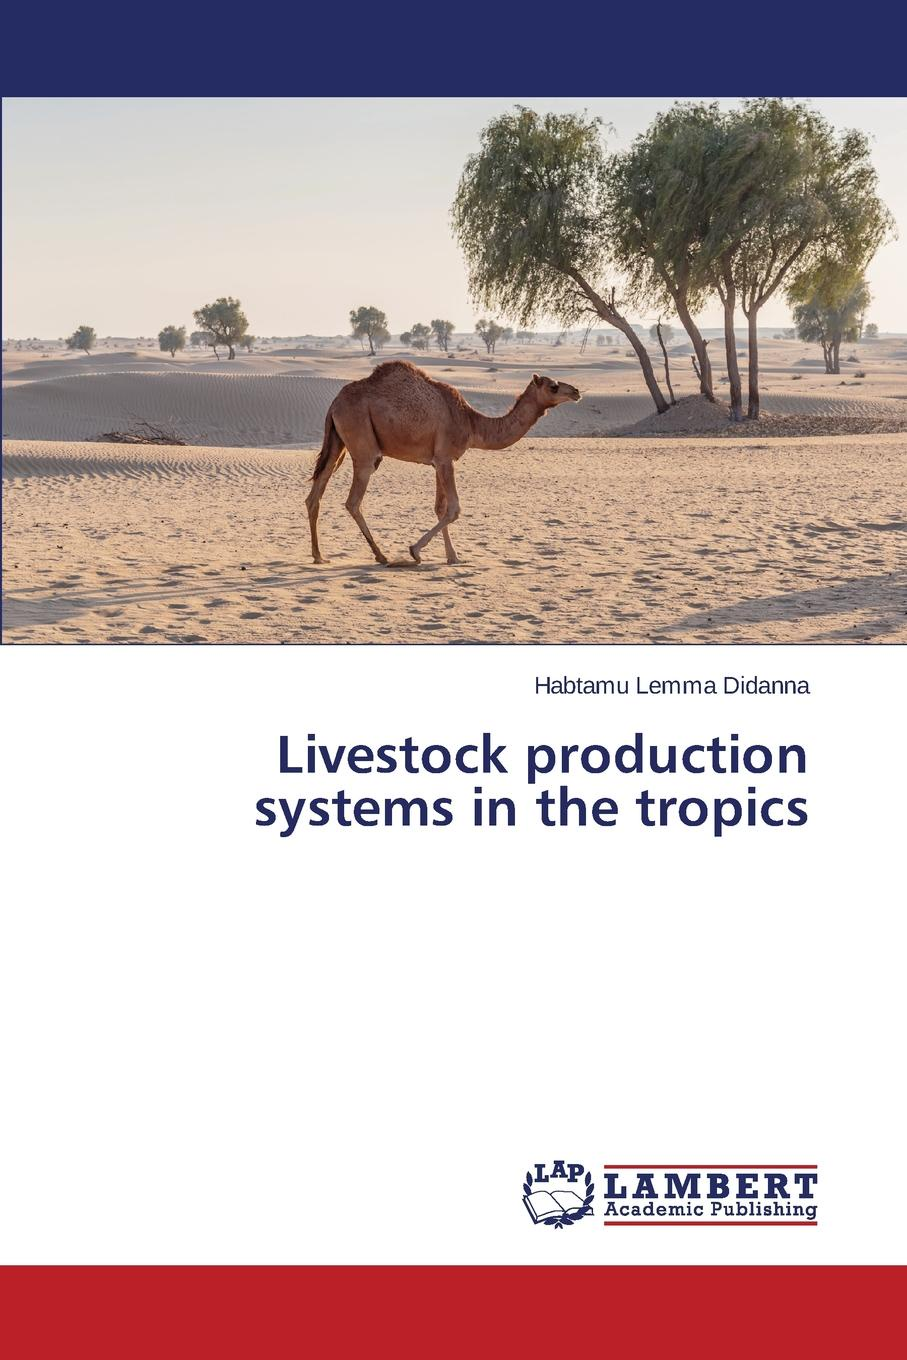 Didanna Habtamu Lemma Livestock production systems in the tropics james tidwell h aquaculture production systems